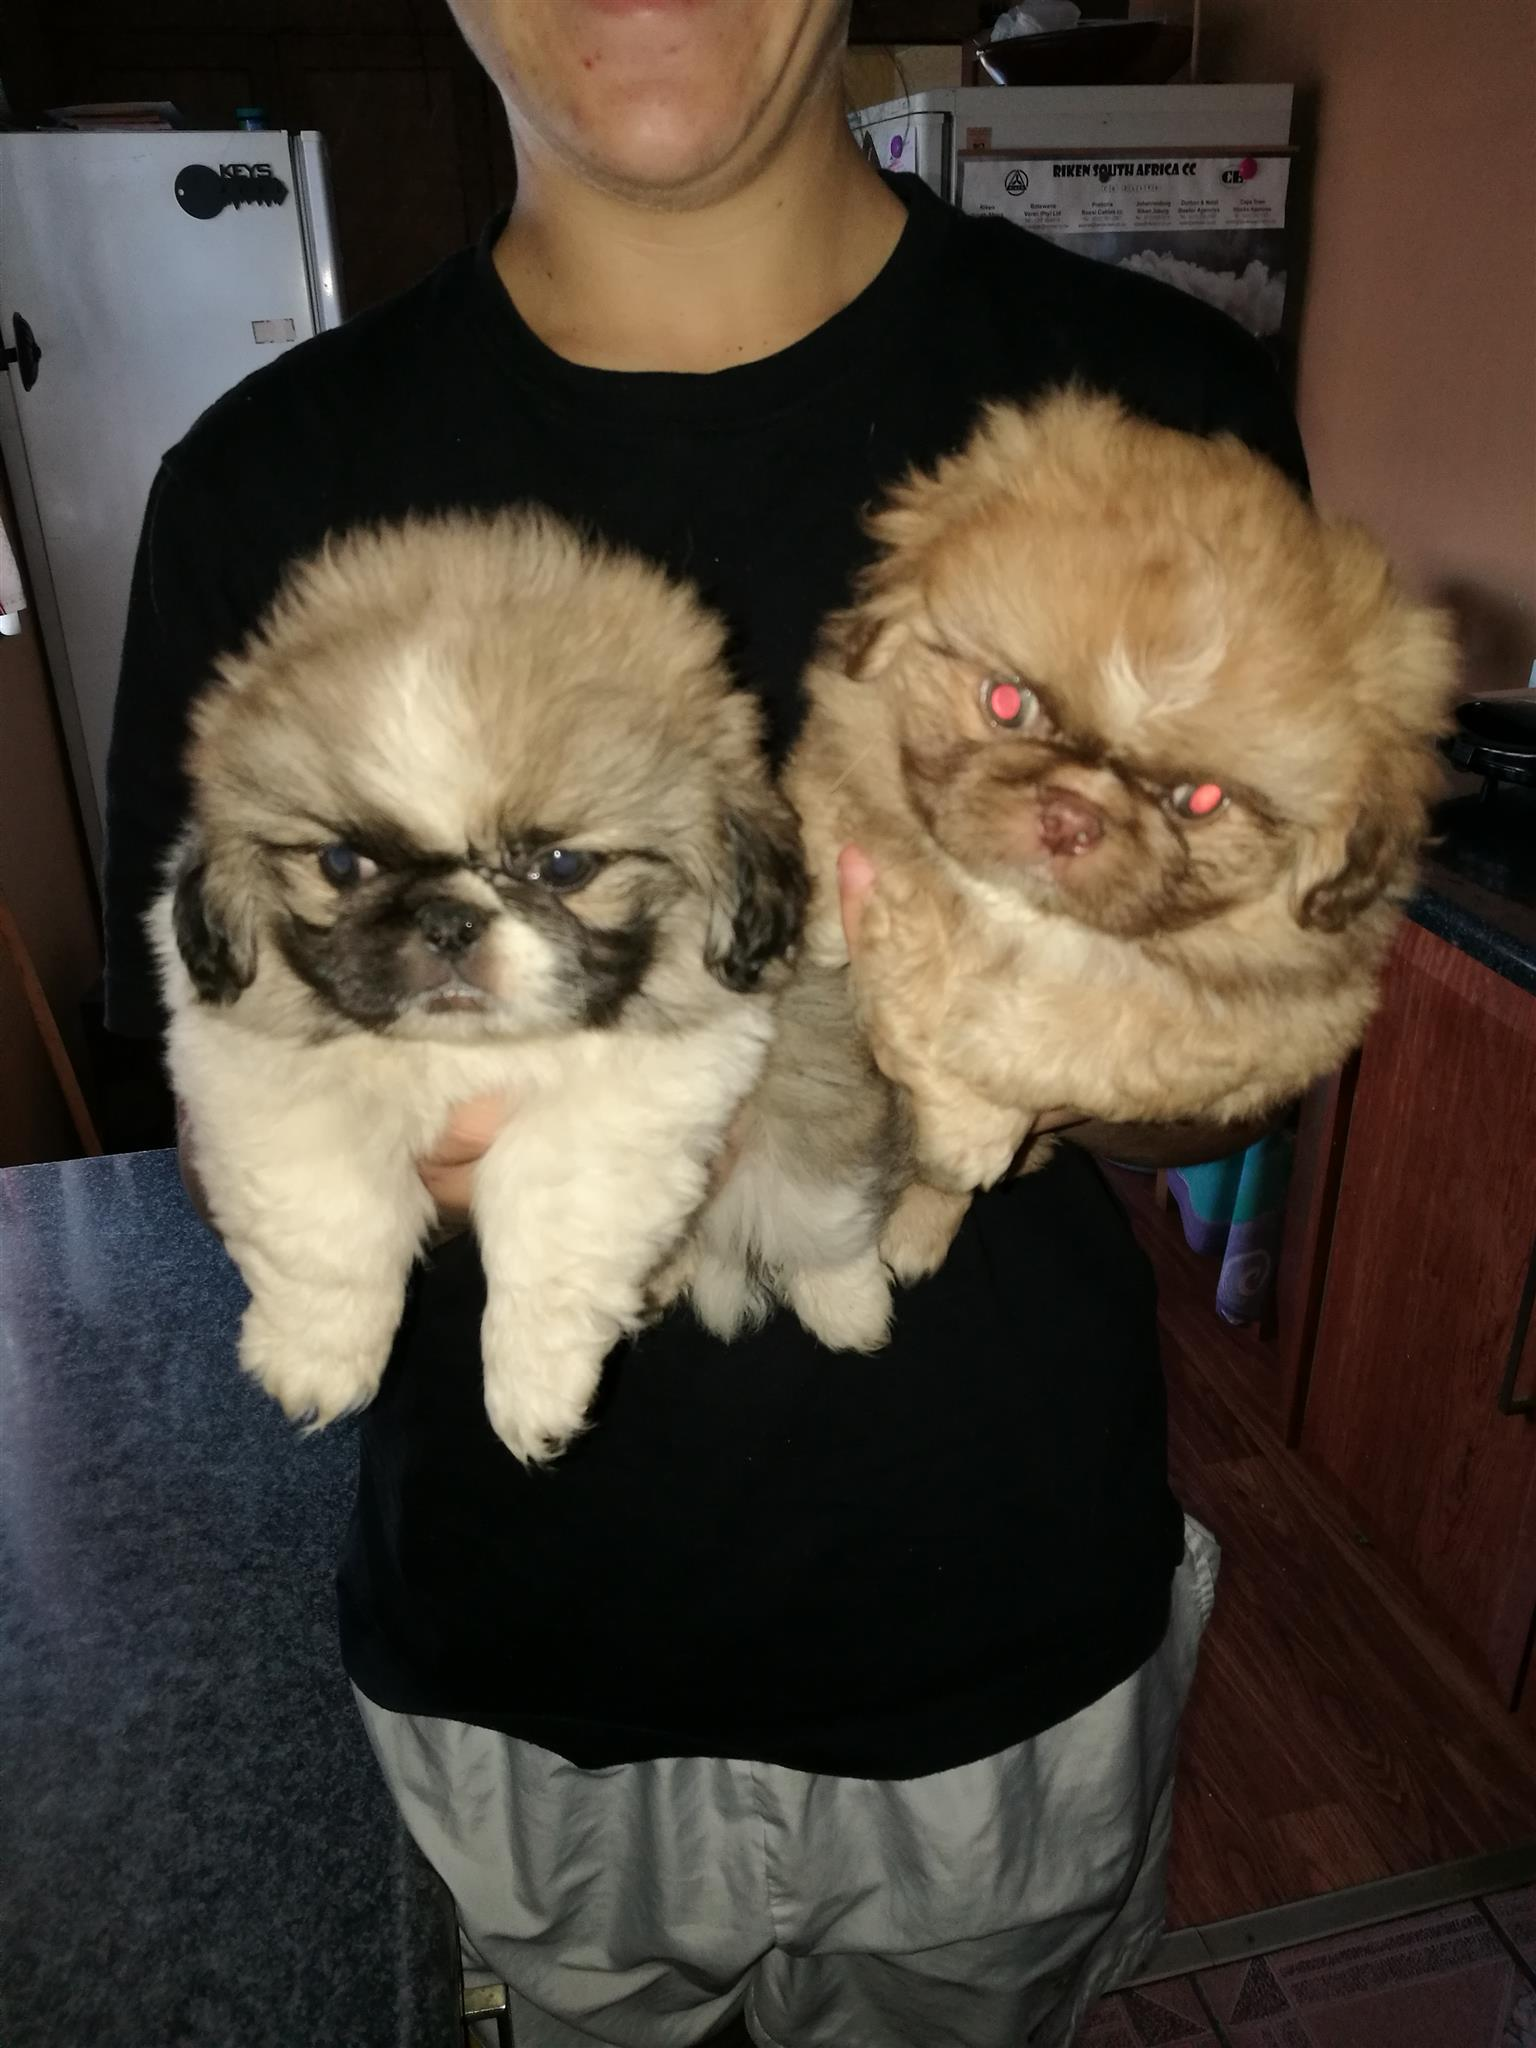 Pekingese puppies for sale | Junk Mail